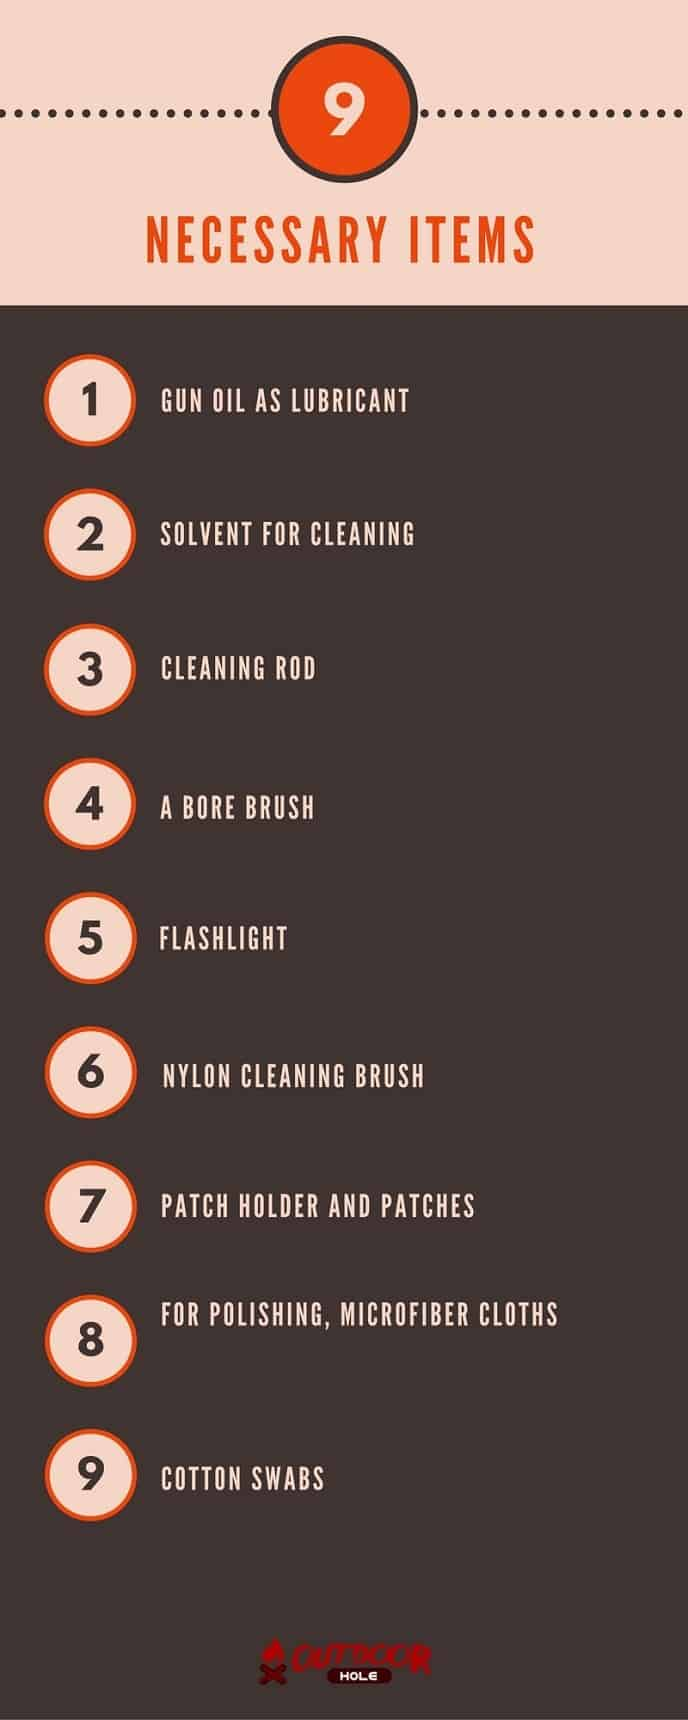 infographic-what-is-the-first-step-in-cleaning-a-firearm